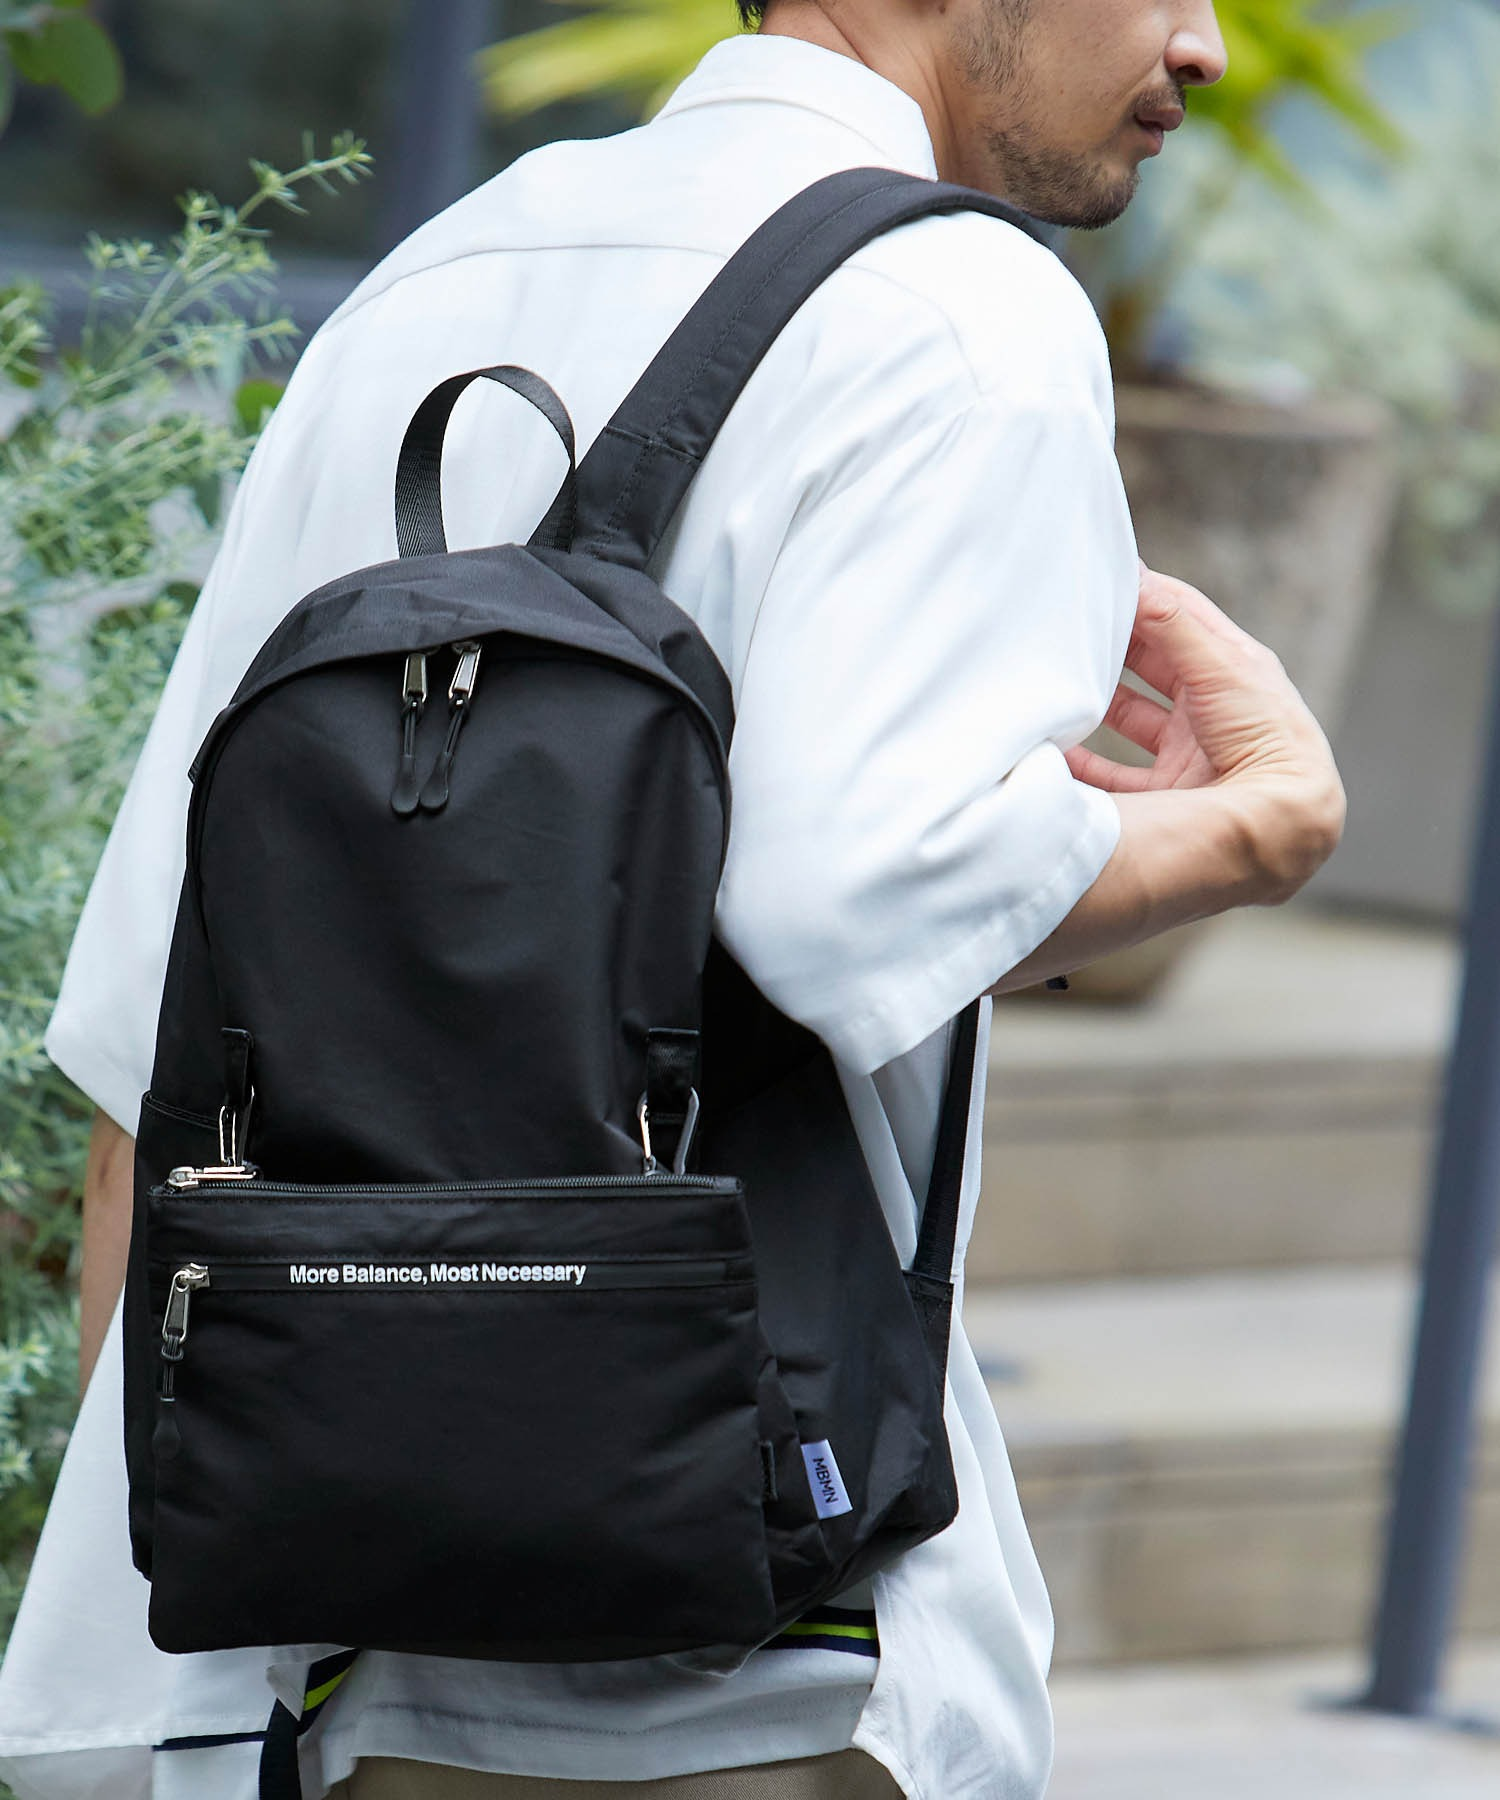 MBMN(More Balance,Most Necessary) -DAILY DAYPACK デイリーデイパック-